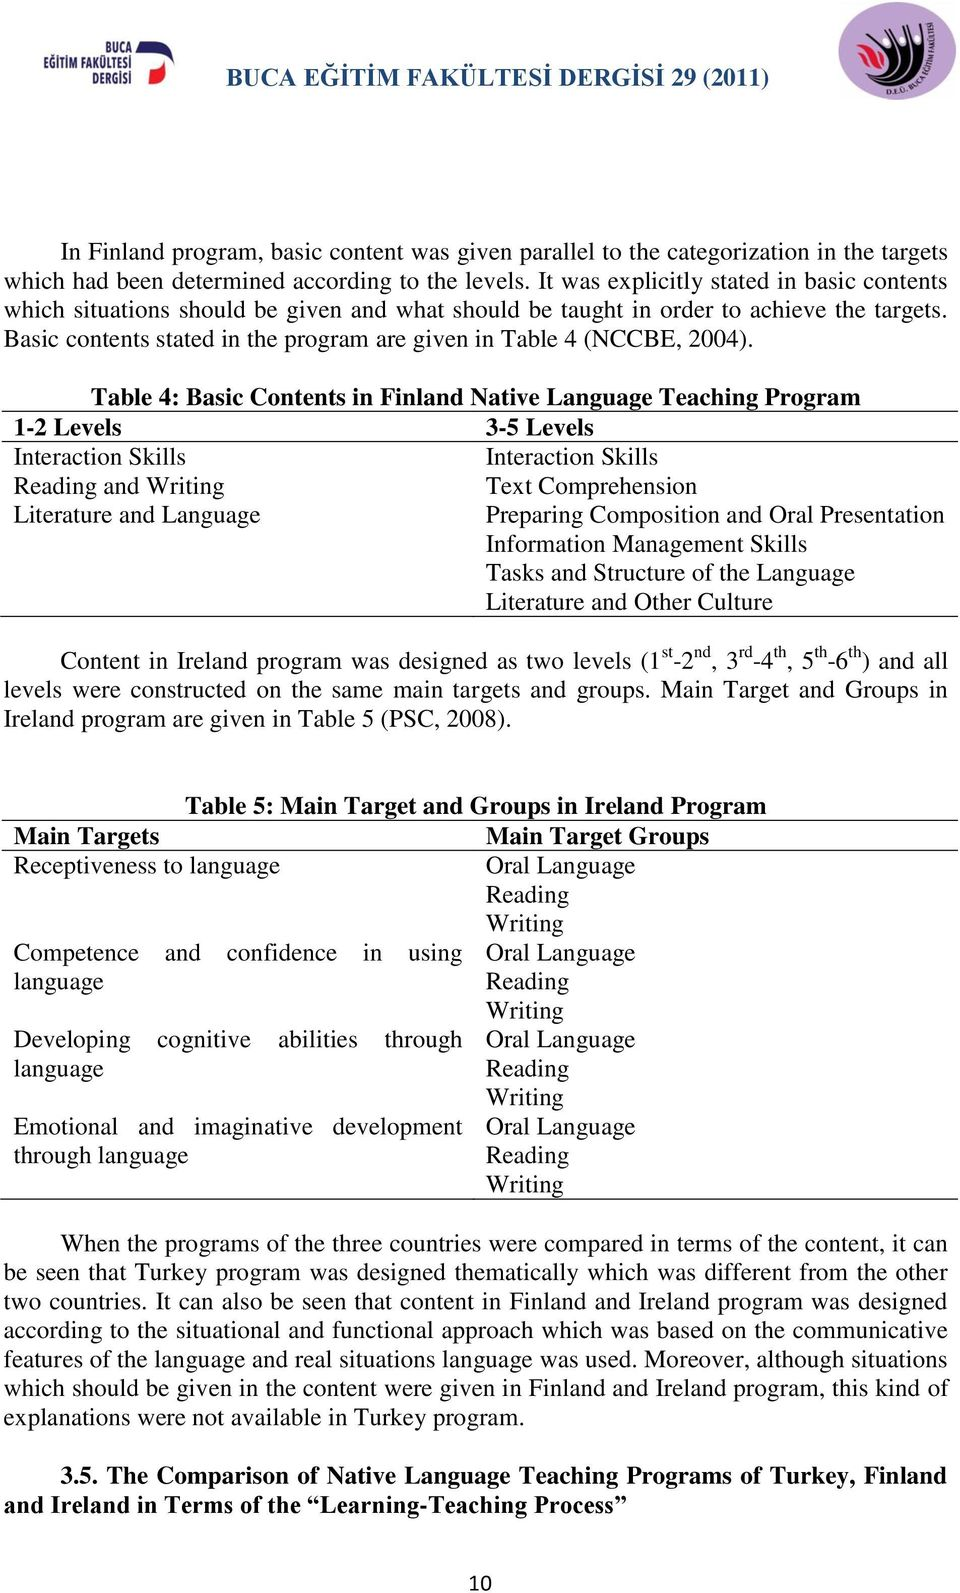 Basic contents stated in the program are given in Table 4 (NCCBE, 2004).